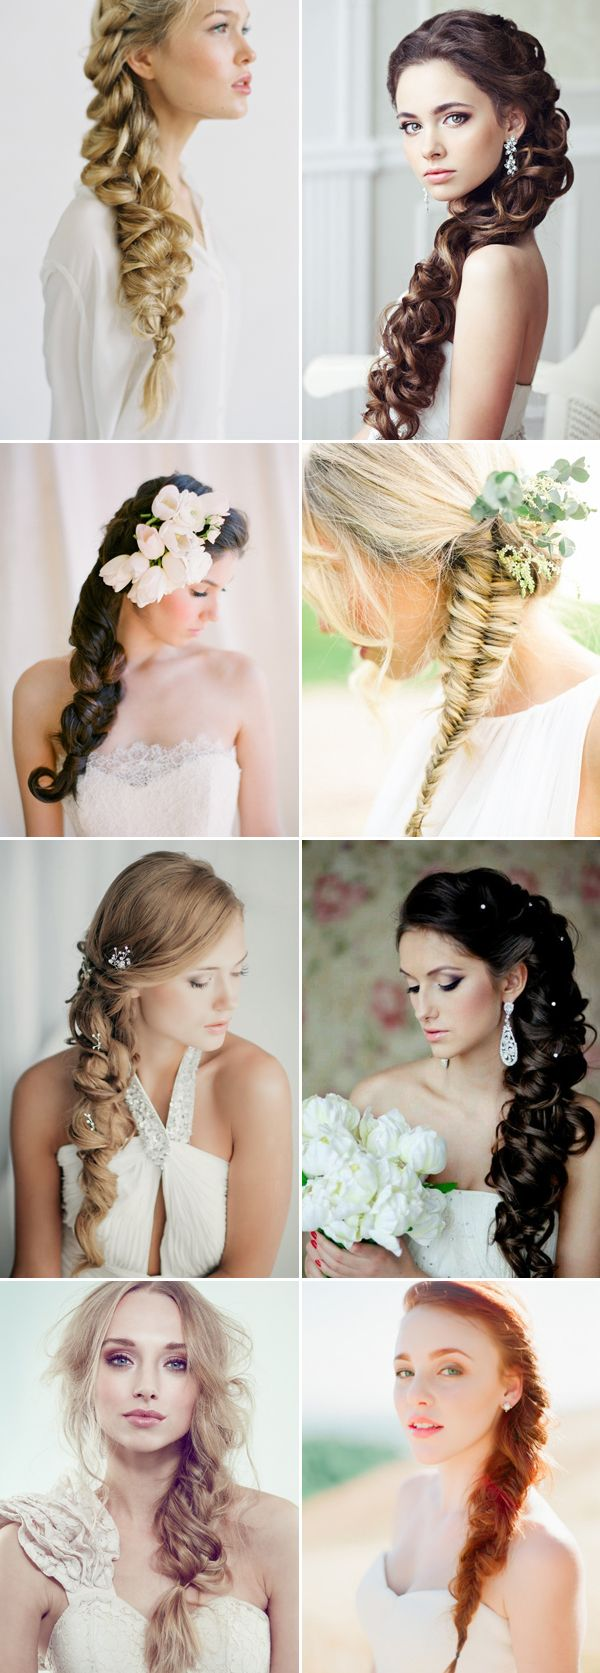 best wedding stuff images on pinterest bridal hairstyles